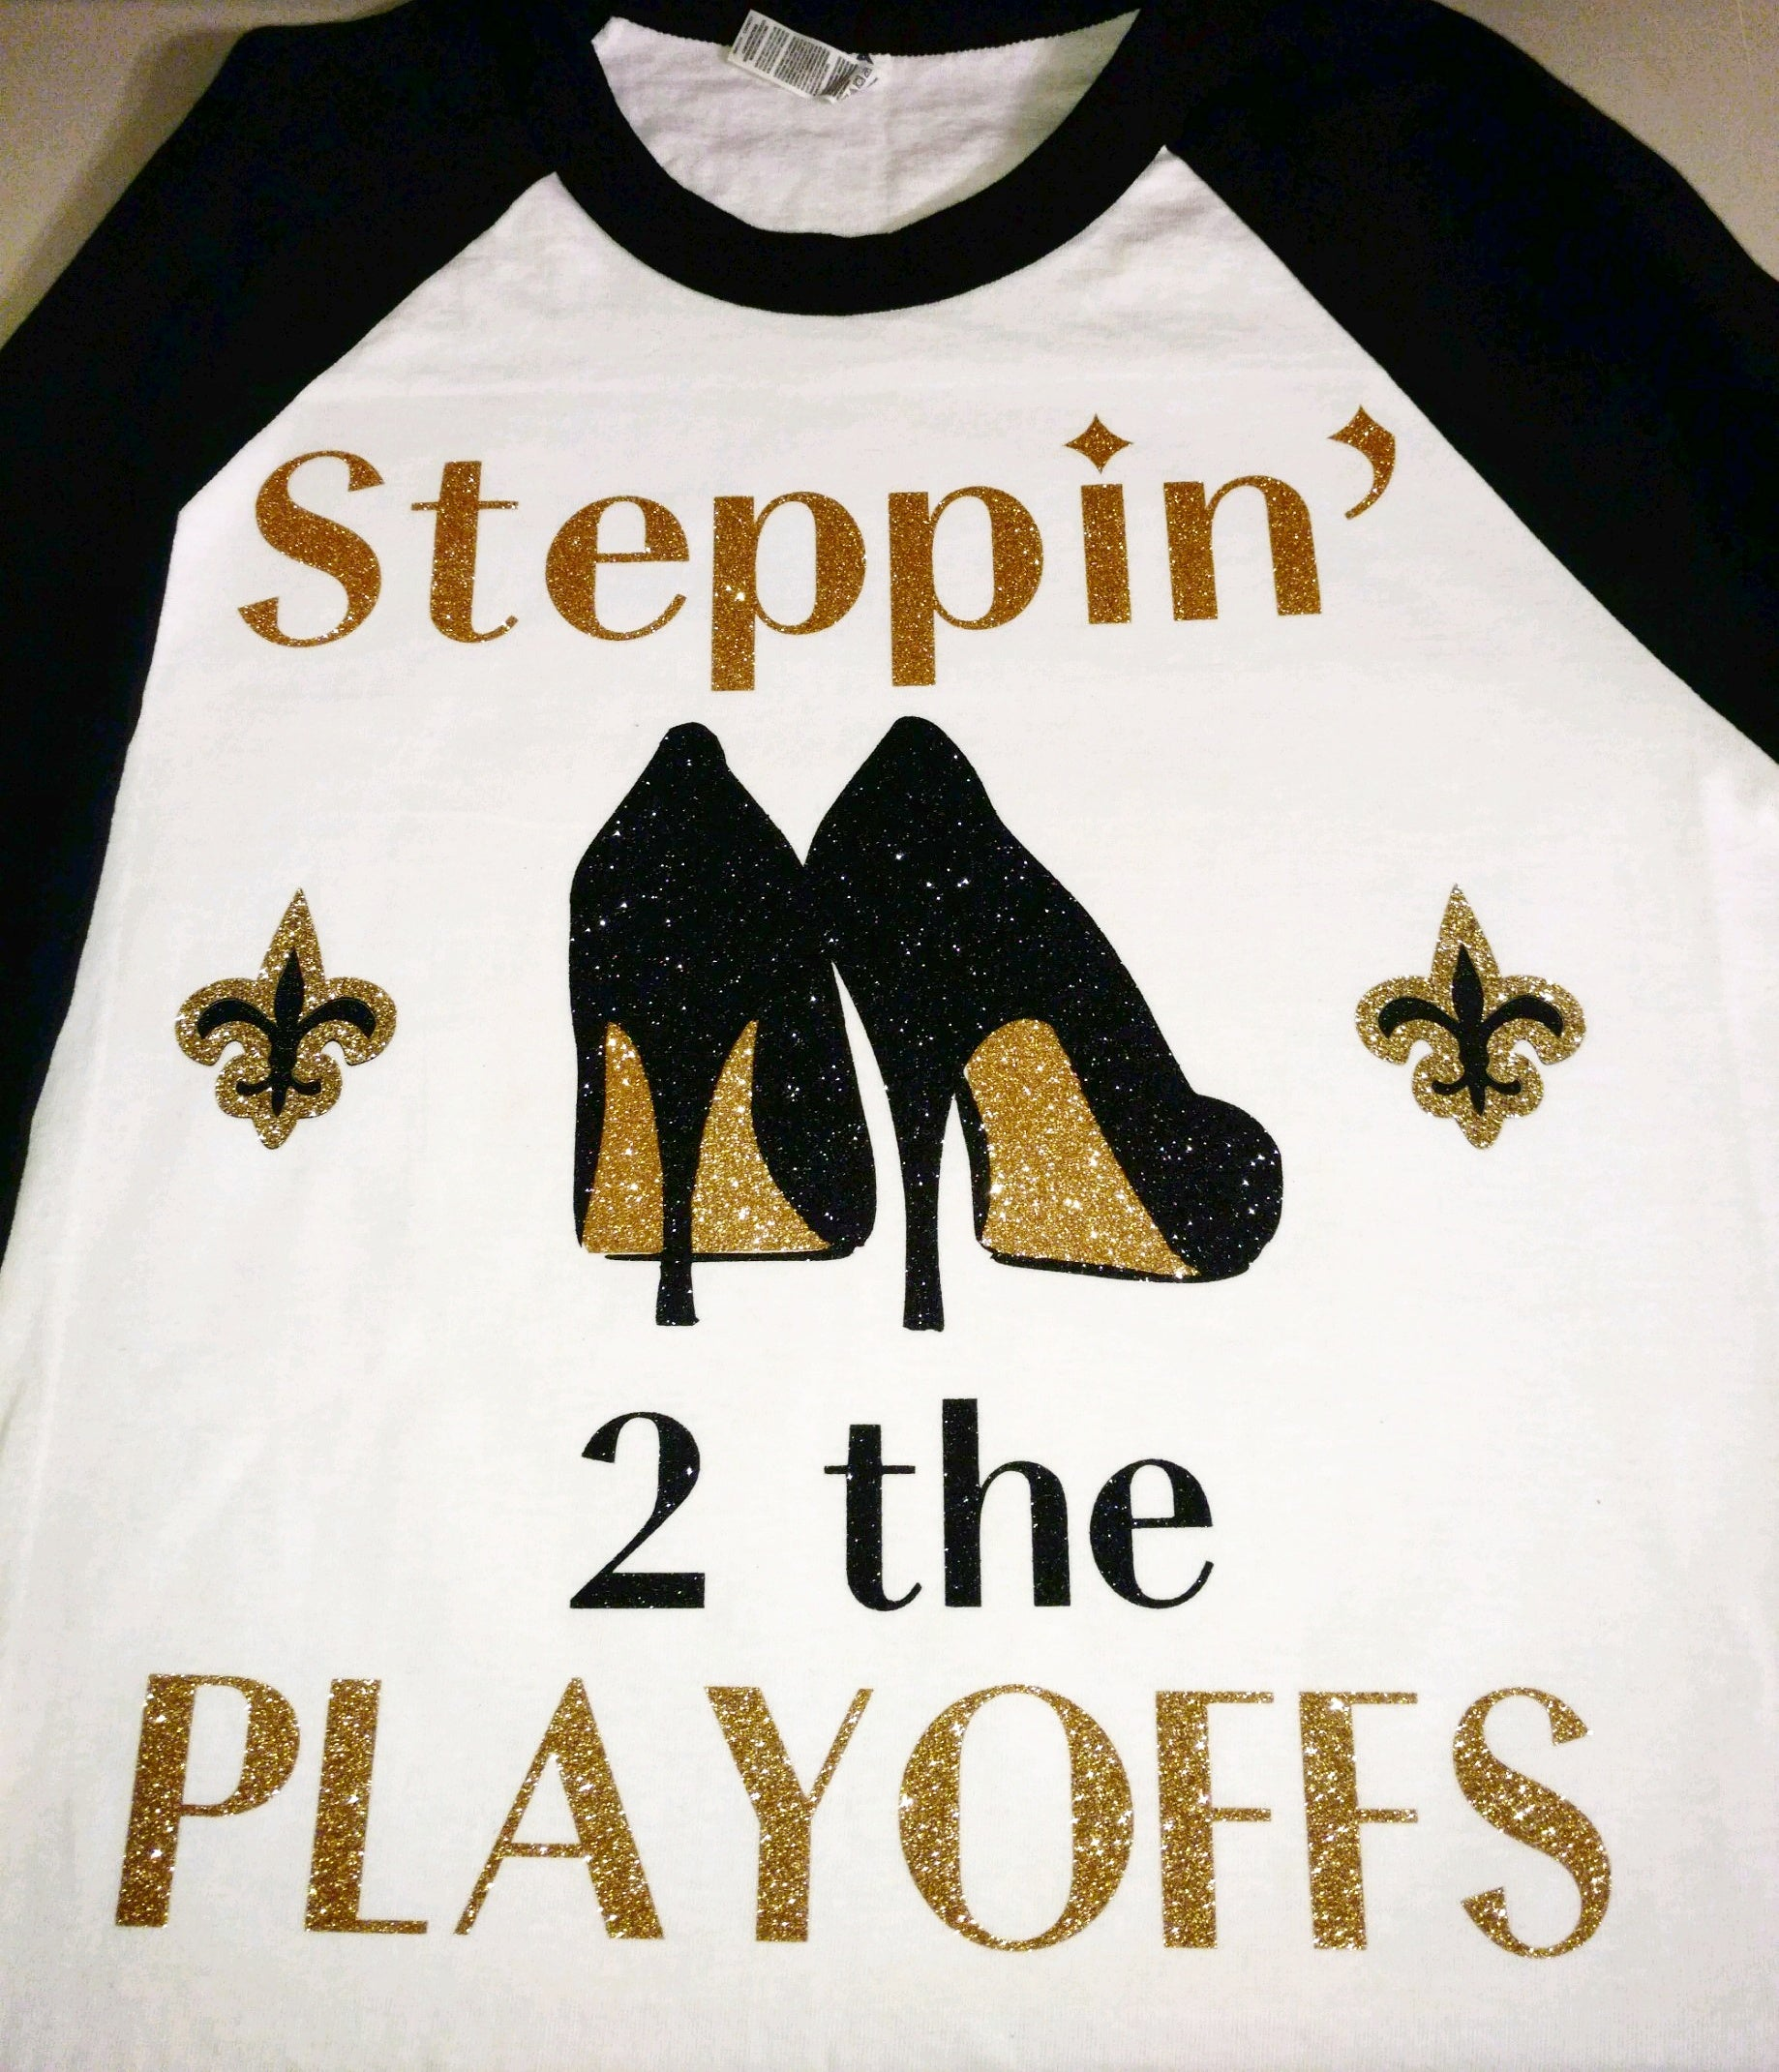 Heel Steppin' to the Playoffs baseball shirt